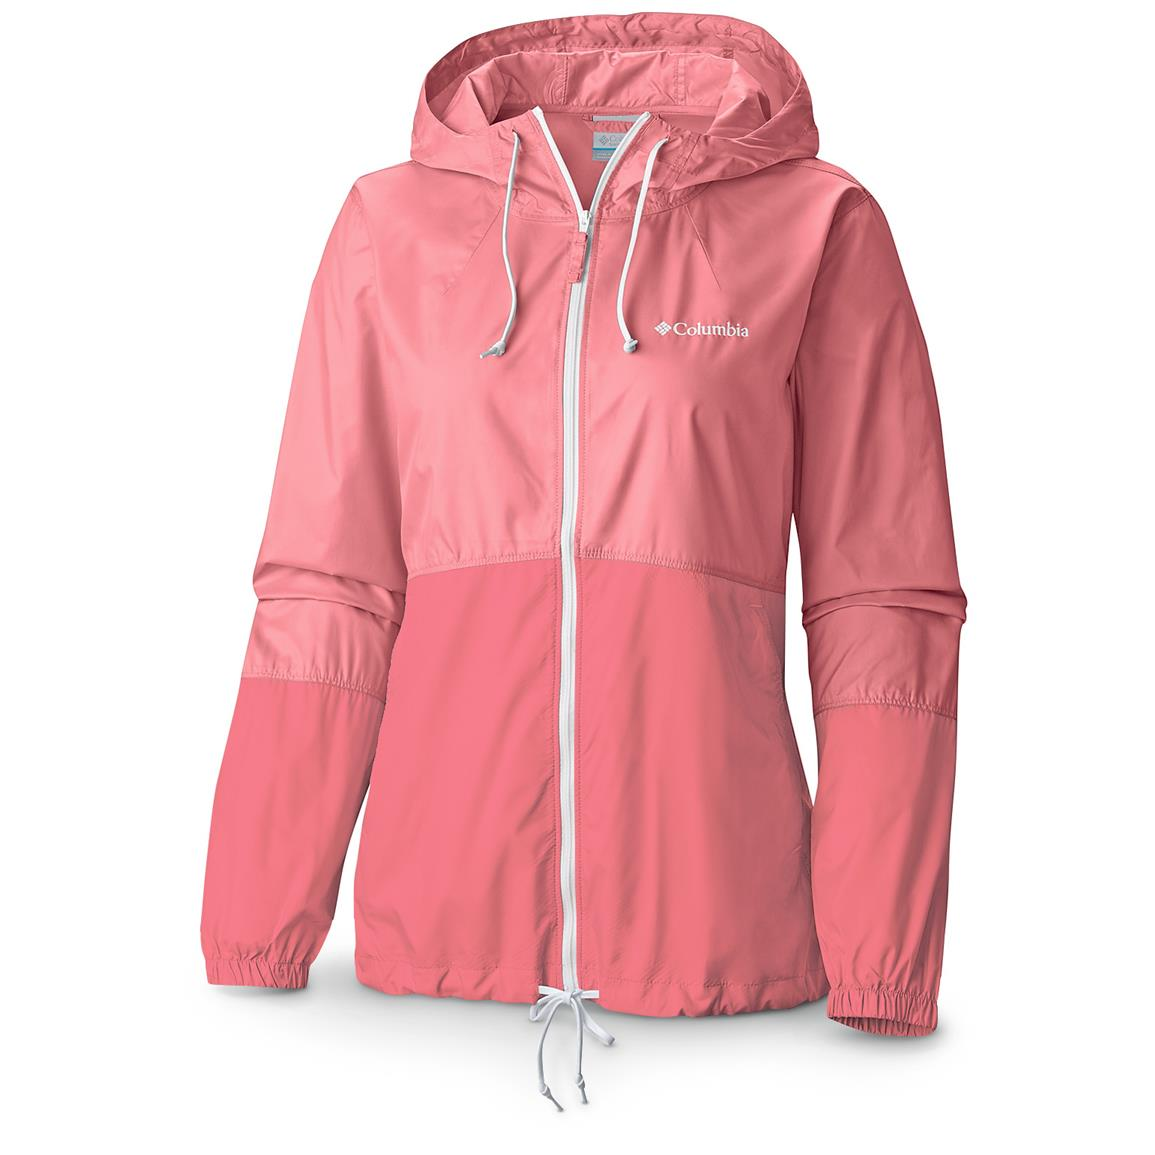 Columbia Women's Flash Forward Windbreaker Jacket, Rosewater